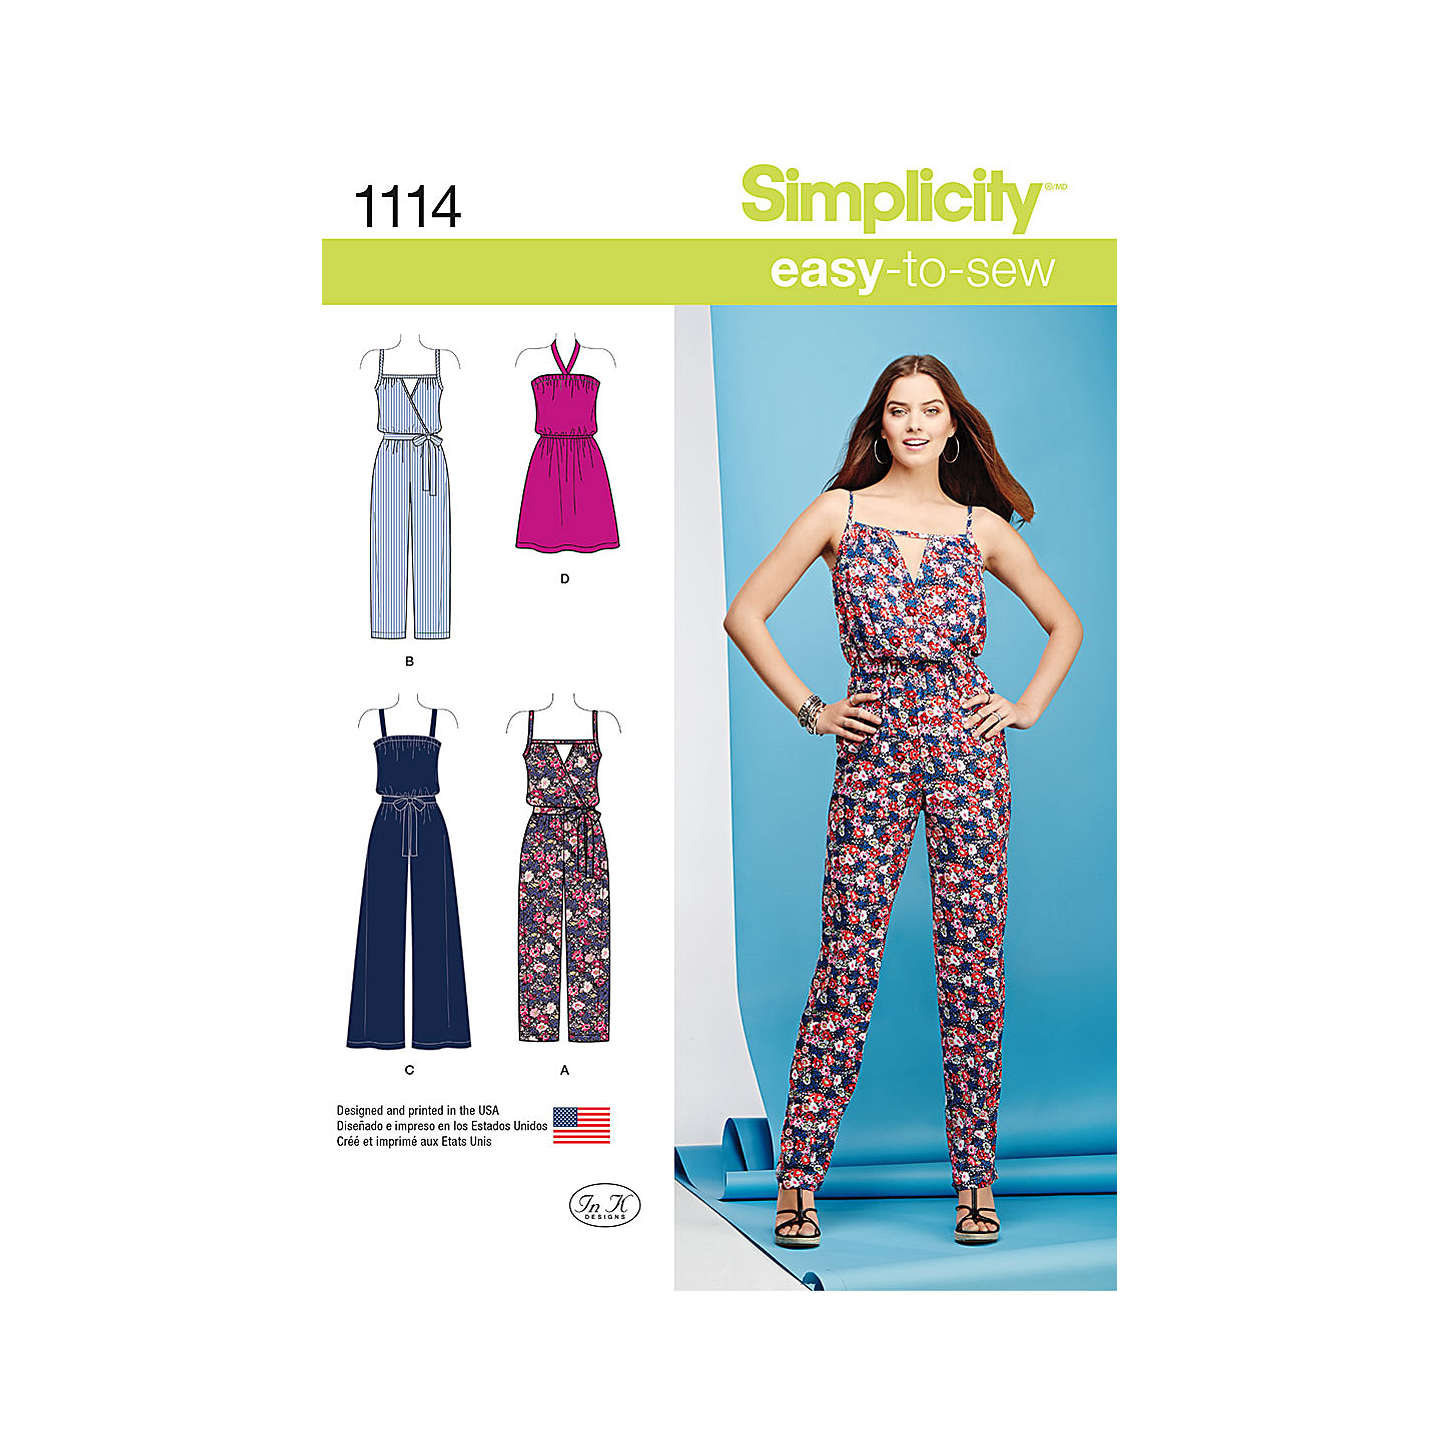 Simplicity Women\'s Dress and Jumpsuit Sewing Pattern, 1114 at John Lewis